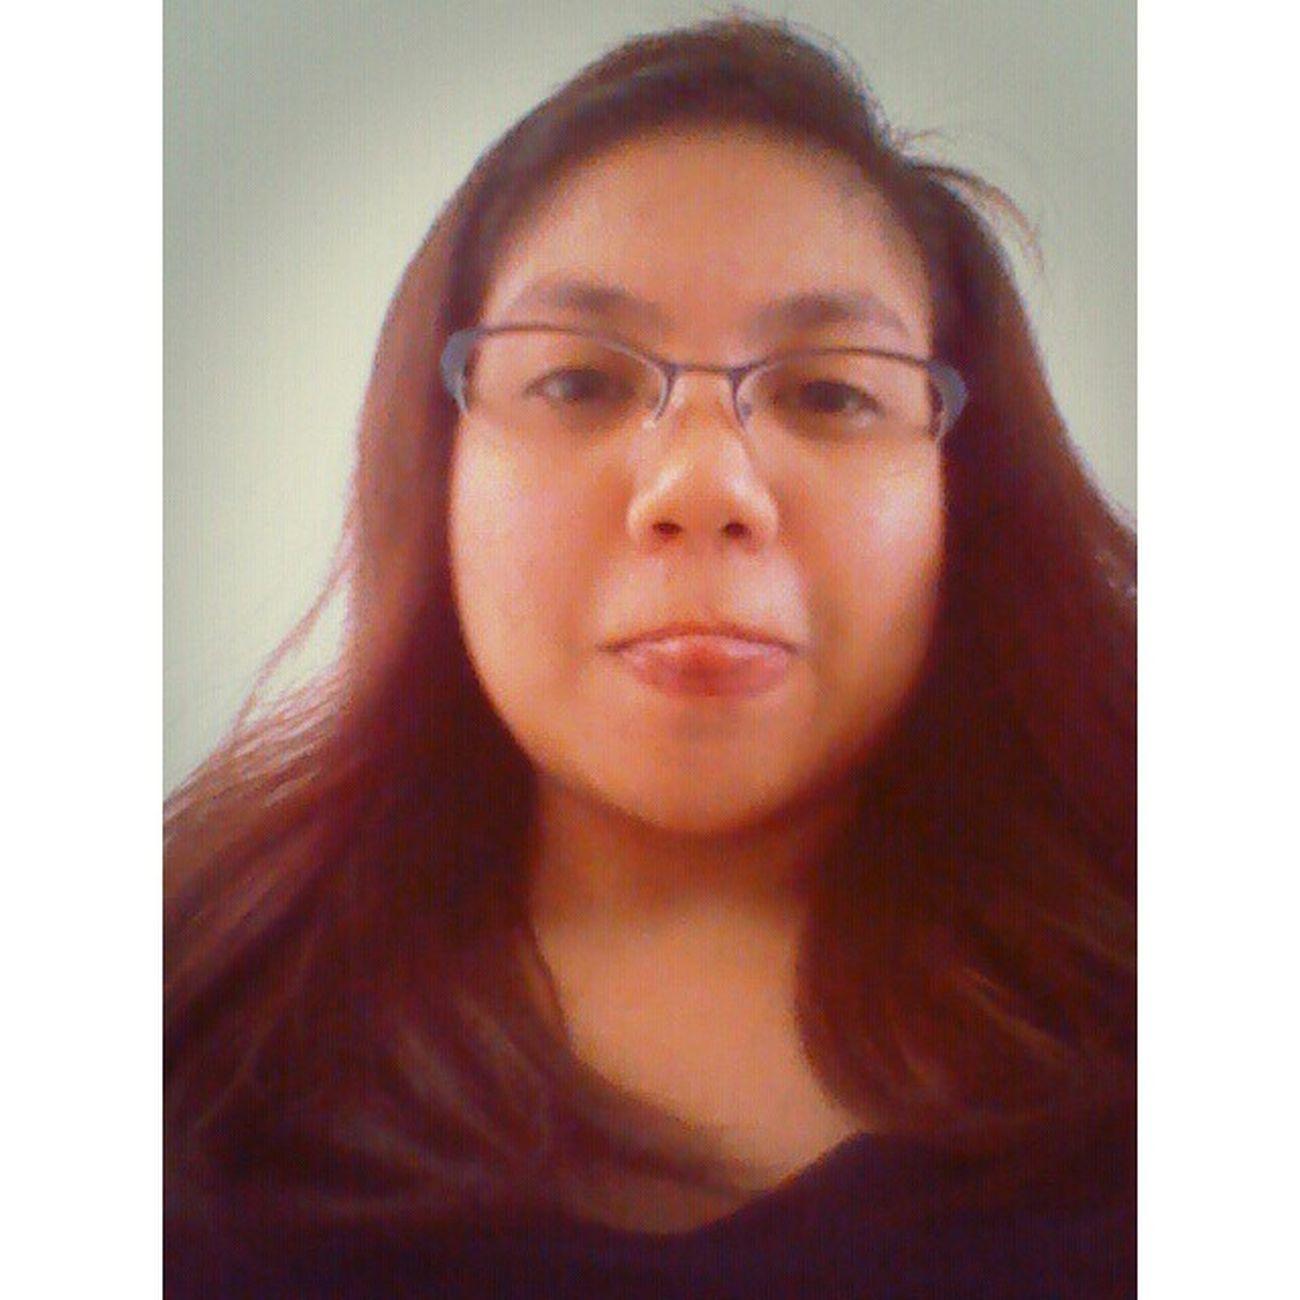 Thinking of another work around with my hair after removing my atomic turq ombre last time. Hmm, maybe I could switch to blonde ombre to partner it with my reddish brown hair. Sundaydyeday Cantcontainwiththis Alwayshungerformore Experimentatitsfinest iloveloudcolors